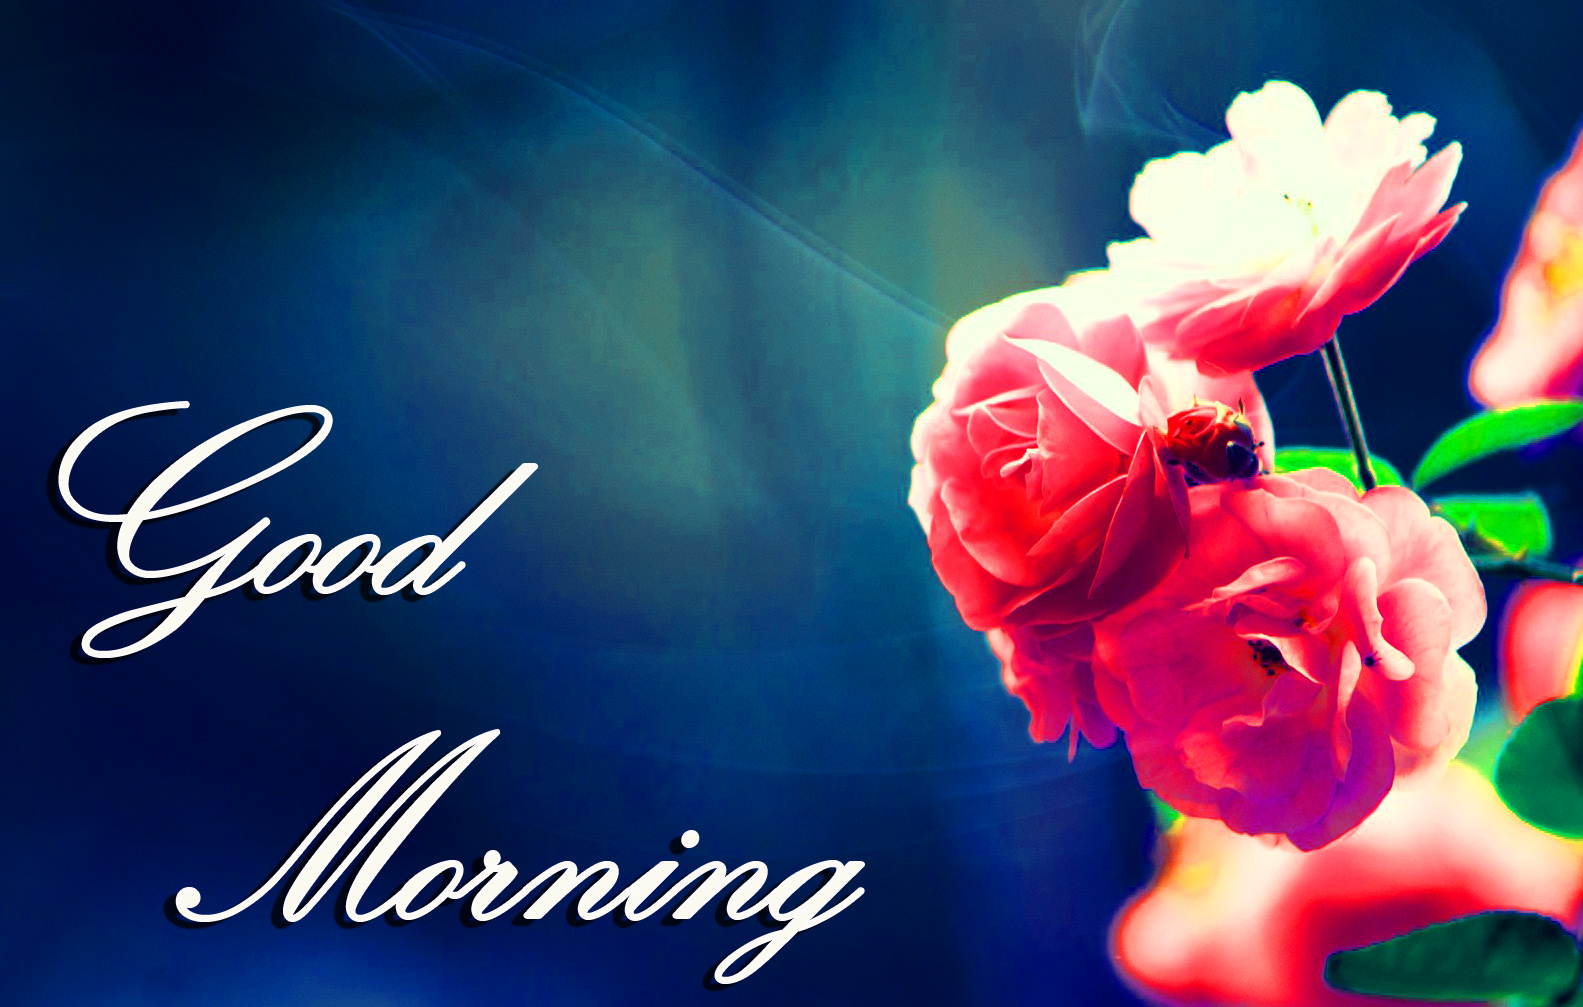 Good Morning Images Wallpaper photo Pictures Pics Free Download With Flower